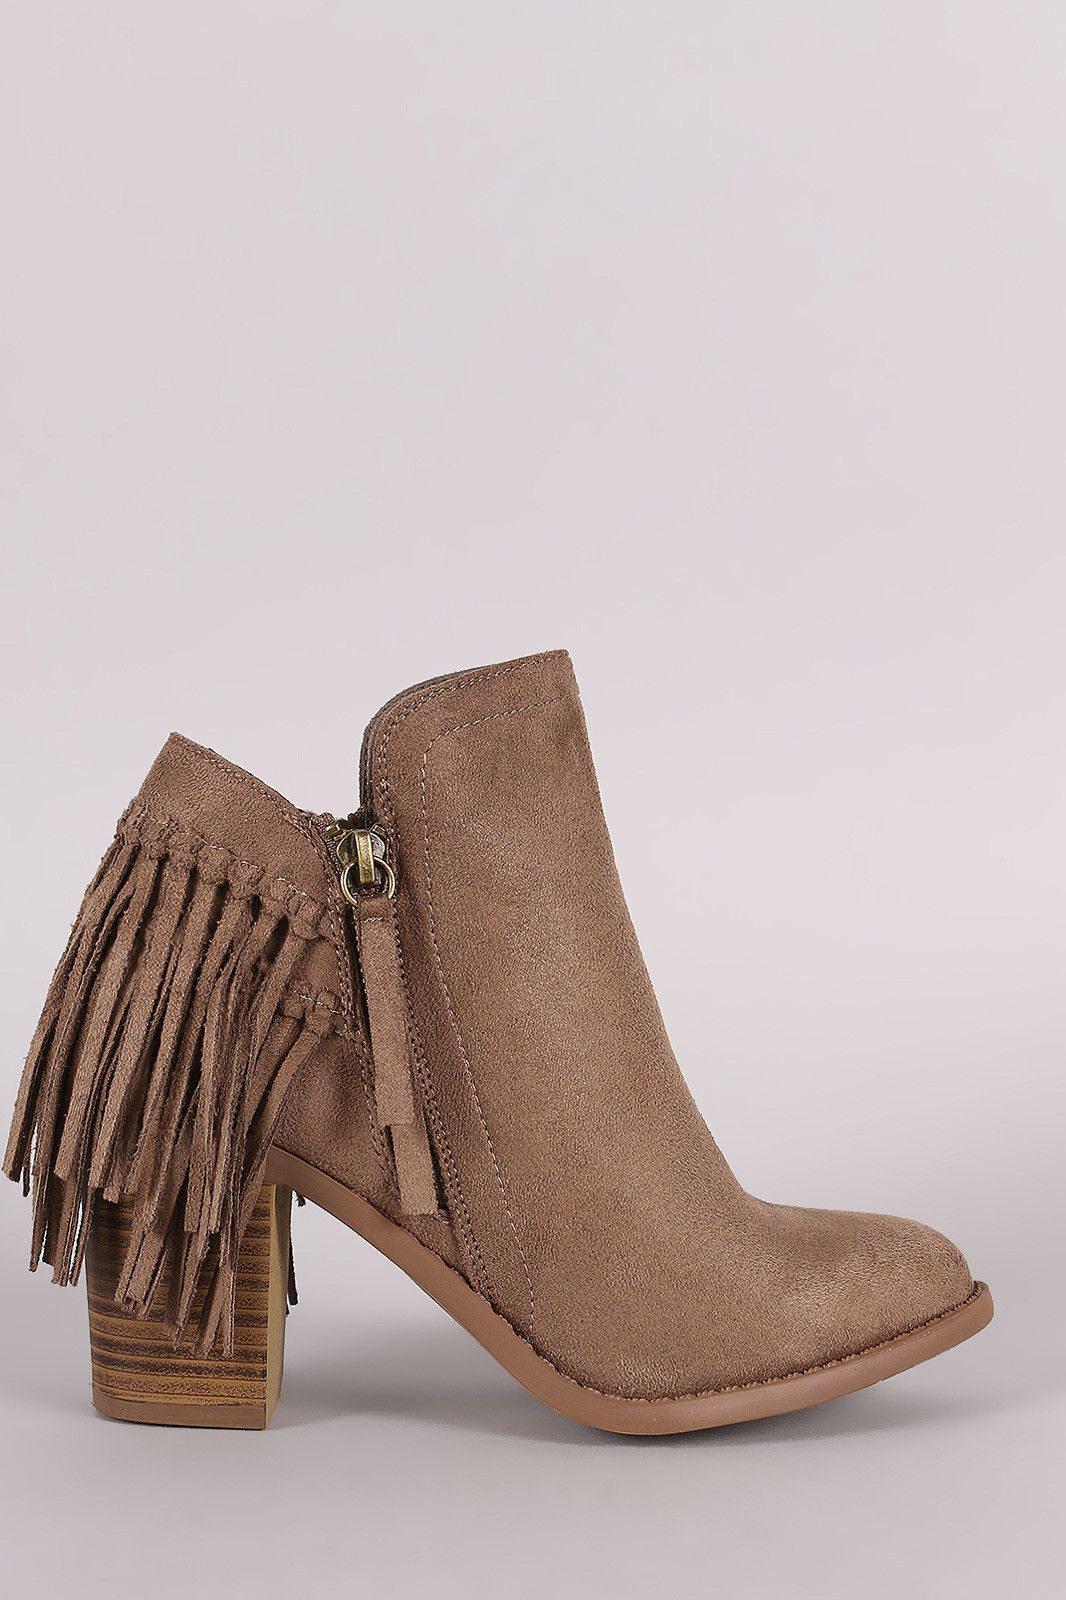 Wild Diva Lounge Suede Fringe Chunky Heeled Booties  #zoparwomenfashion #dresses #pants #styles #summer #tops #jeans #WomenClothing #clothes #WomenClothes